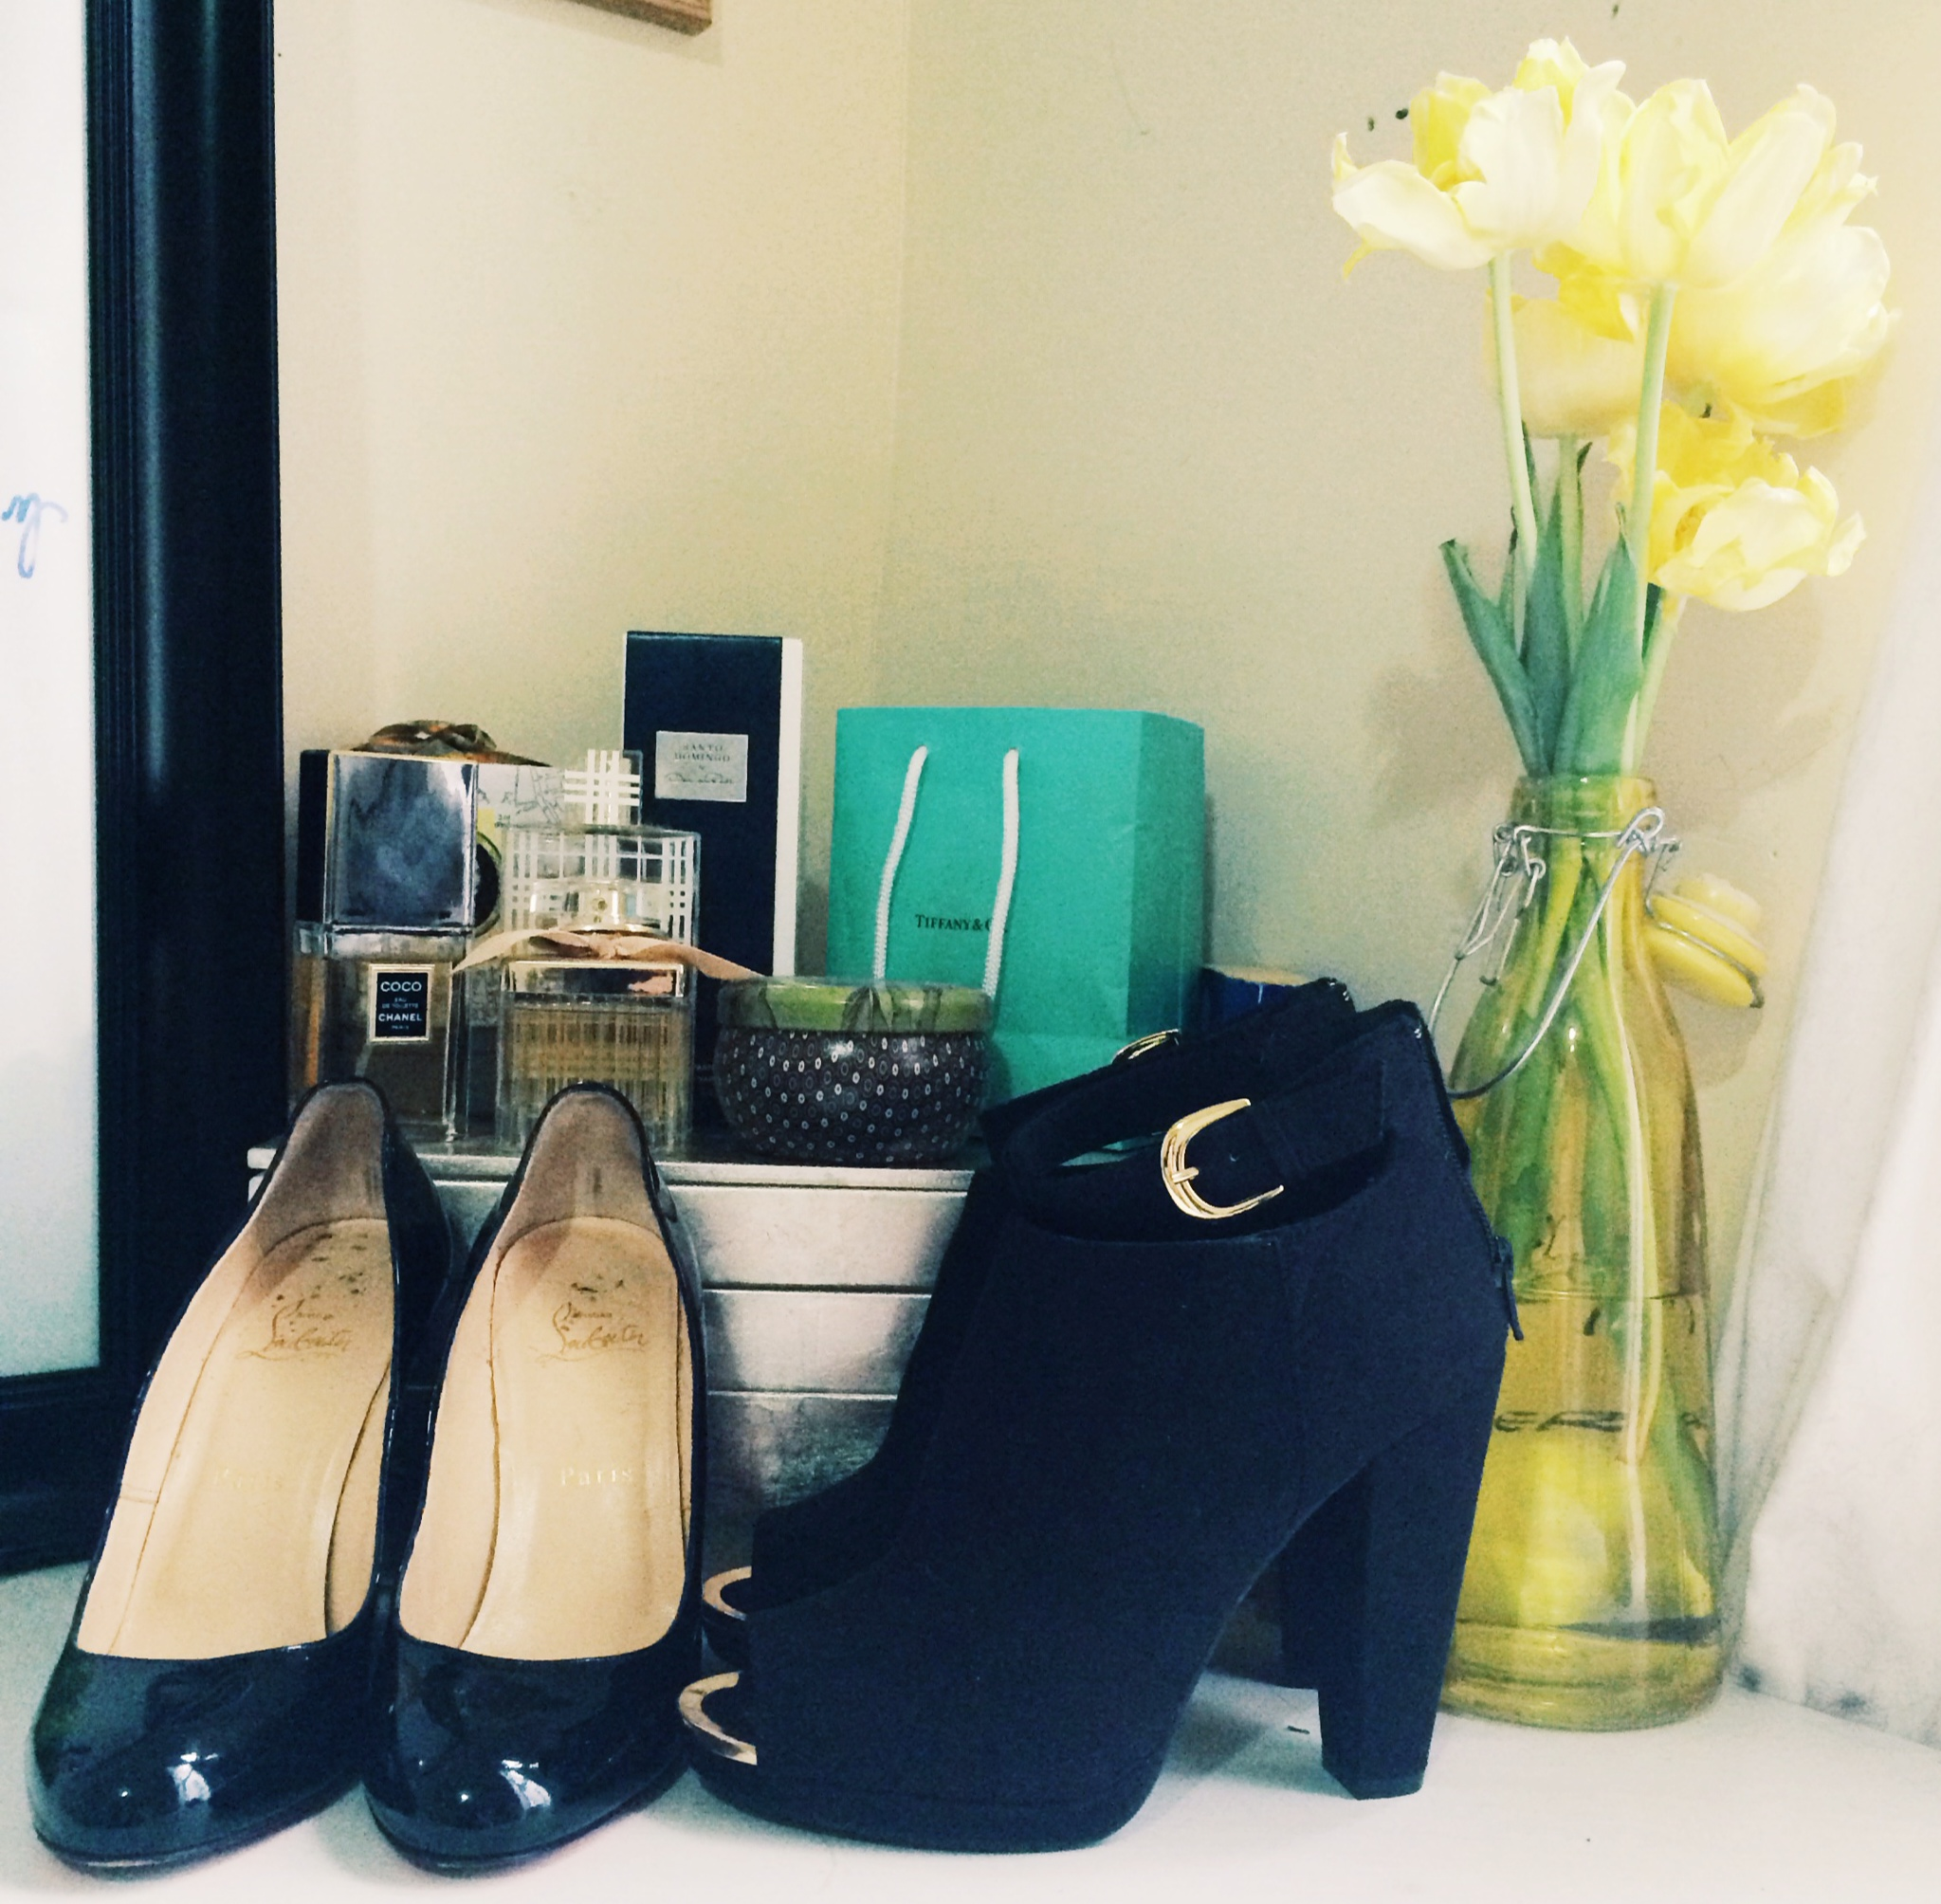 Shoes (from left): Christian Louboutin, H&M